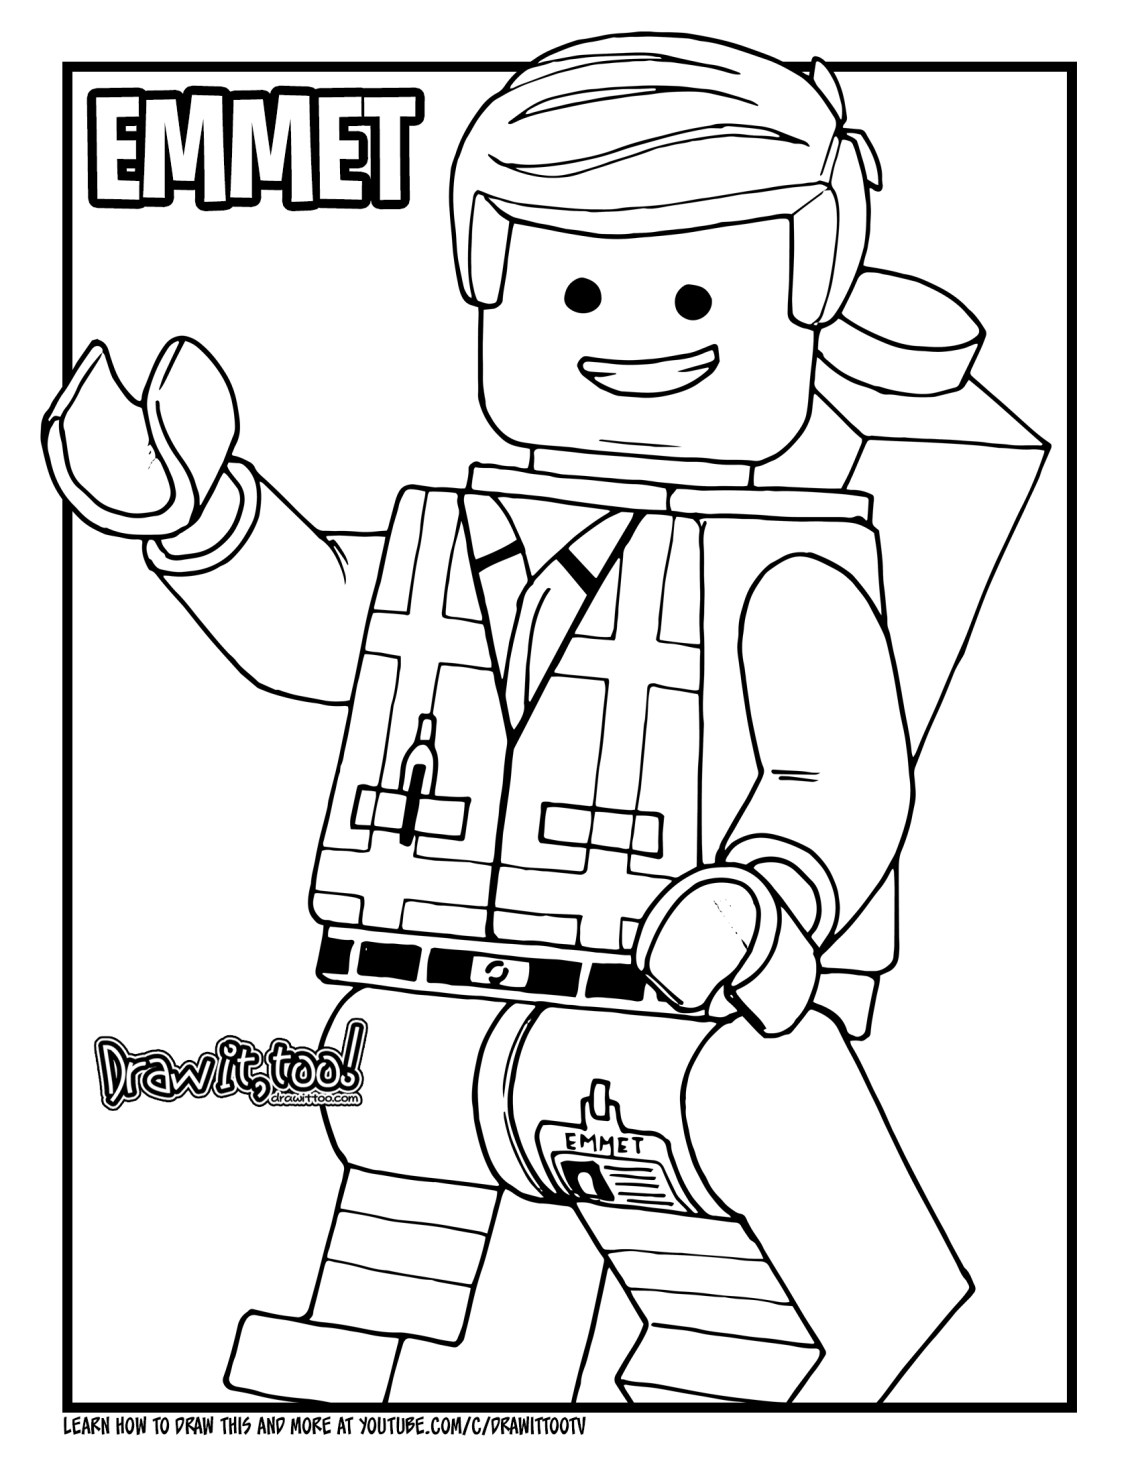 Download the emmet coloring page here